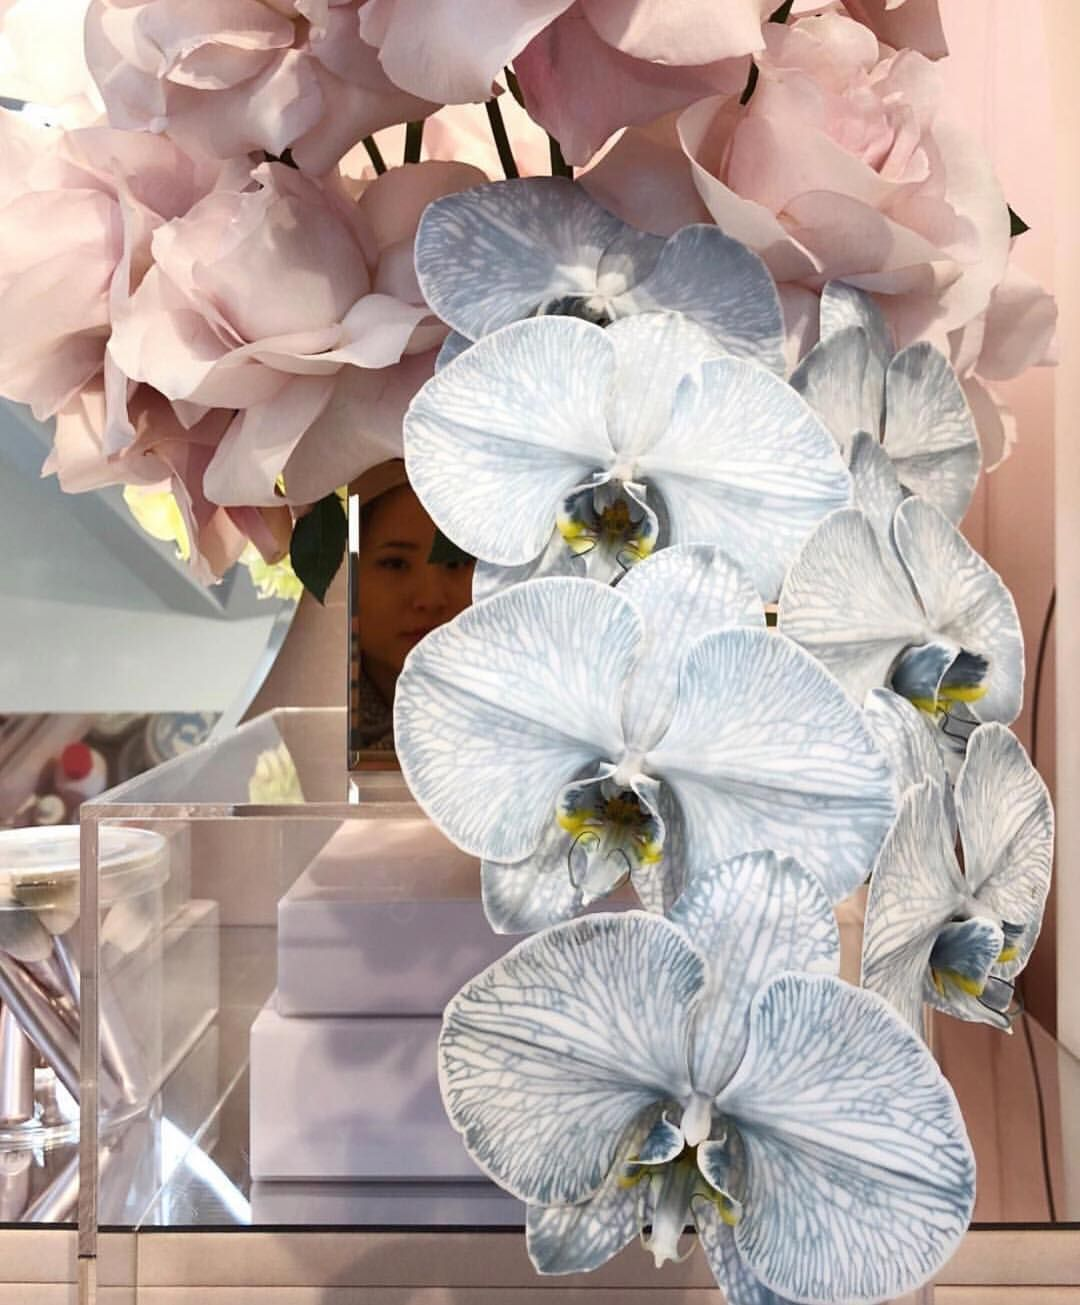 1 463 Likes 9 Comments Glossier Glossier On Instagram Baby Blue Orchids Blue Orchids Colorful Wedding Flowers Orchids